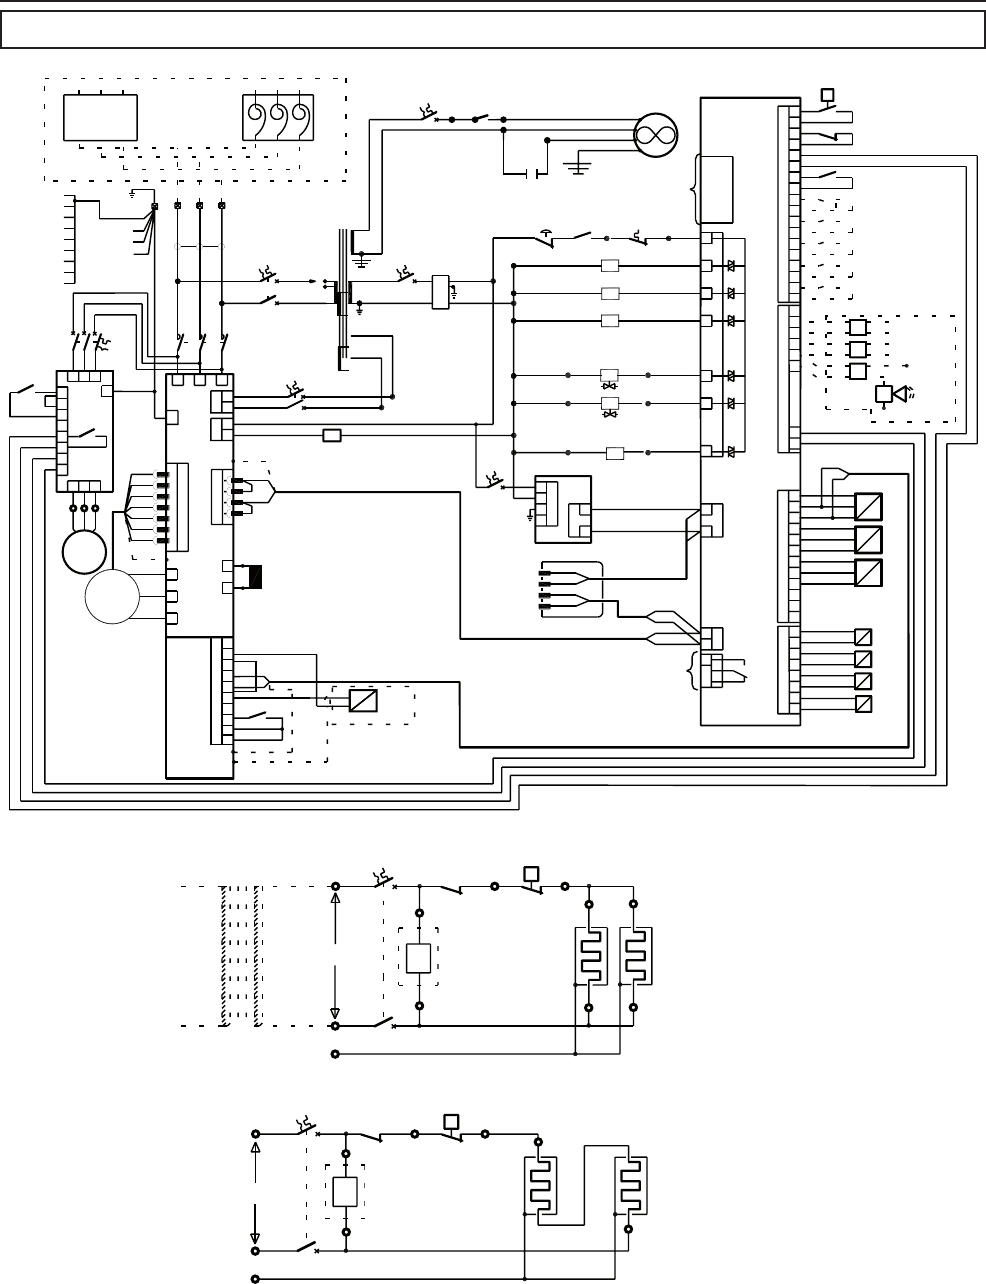 ingersoll rand compressor wiring diagram free download wiring